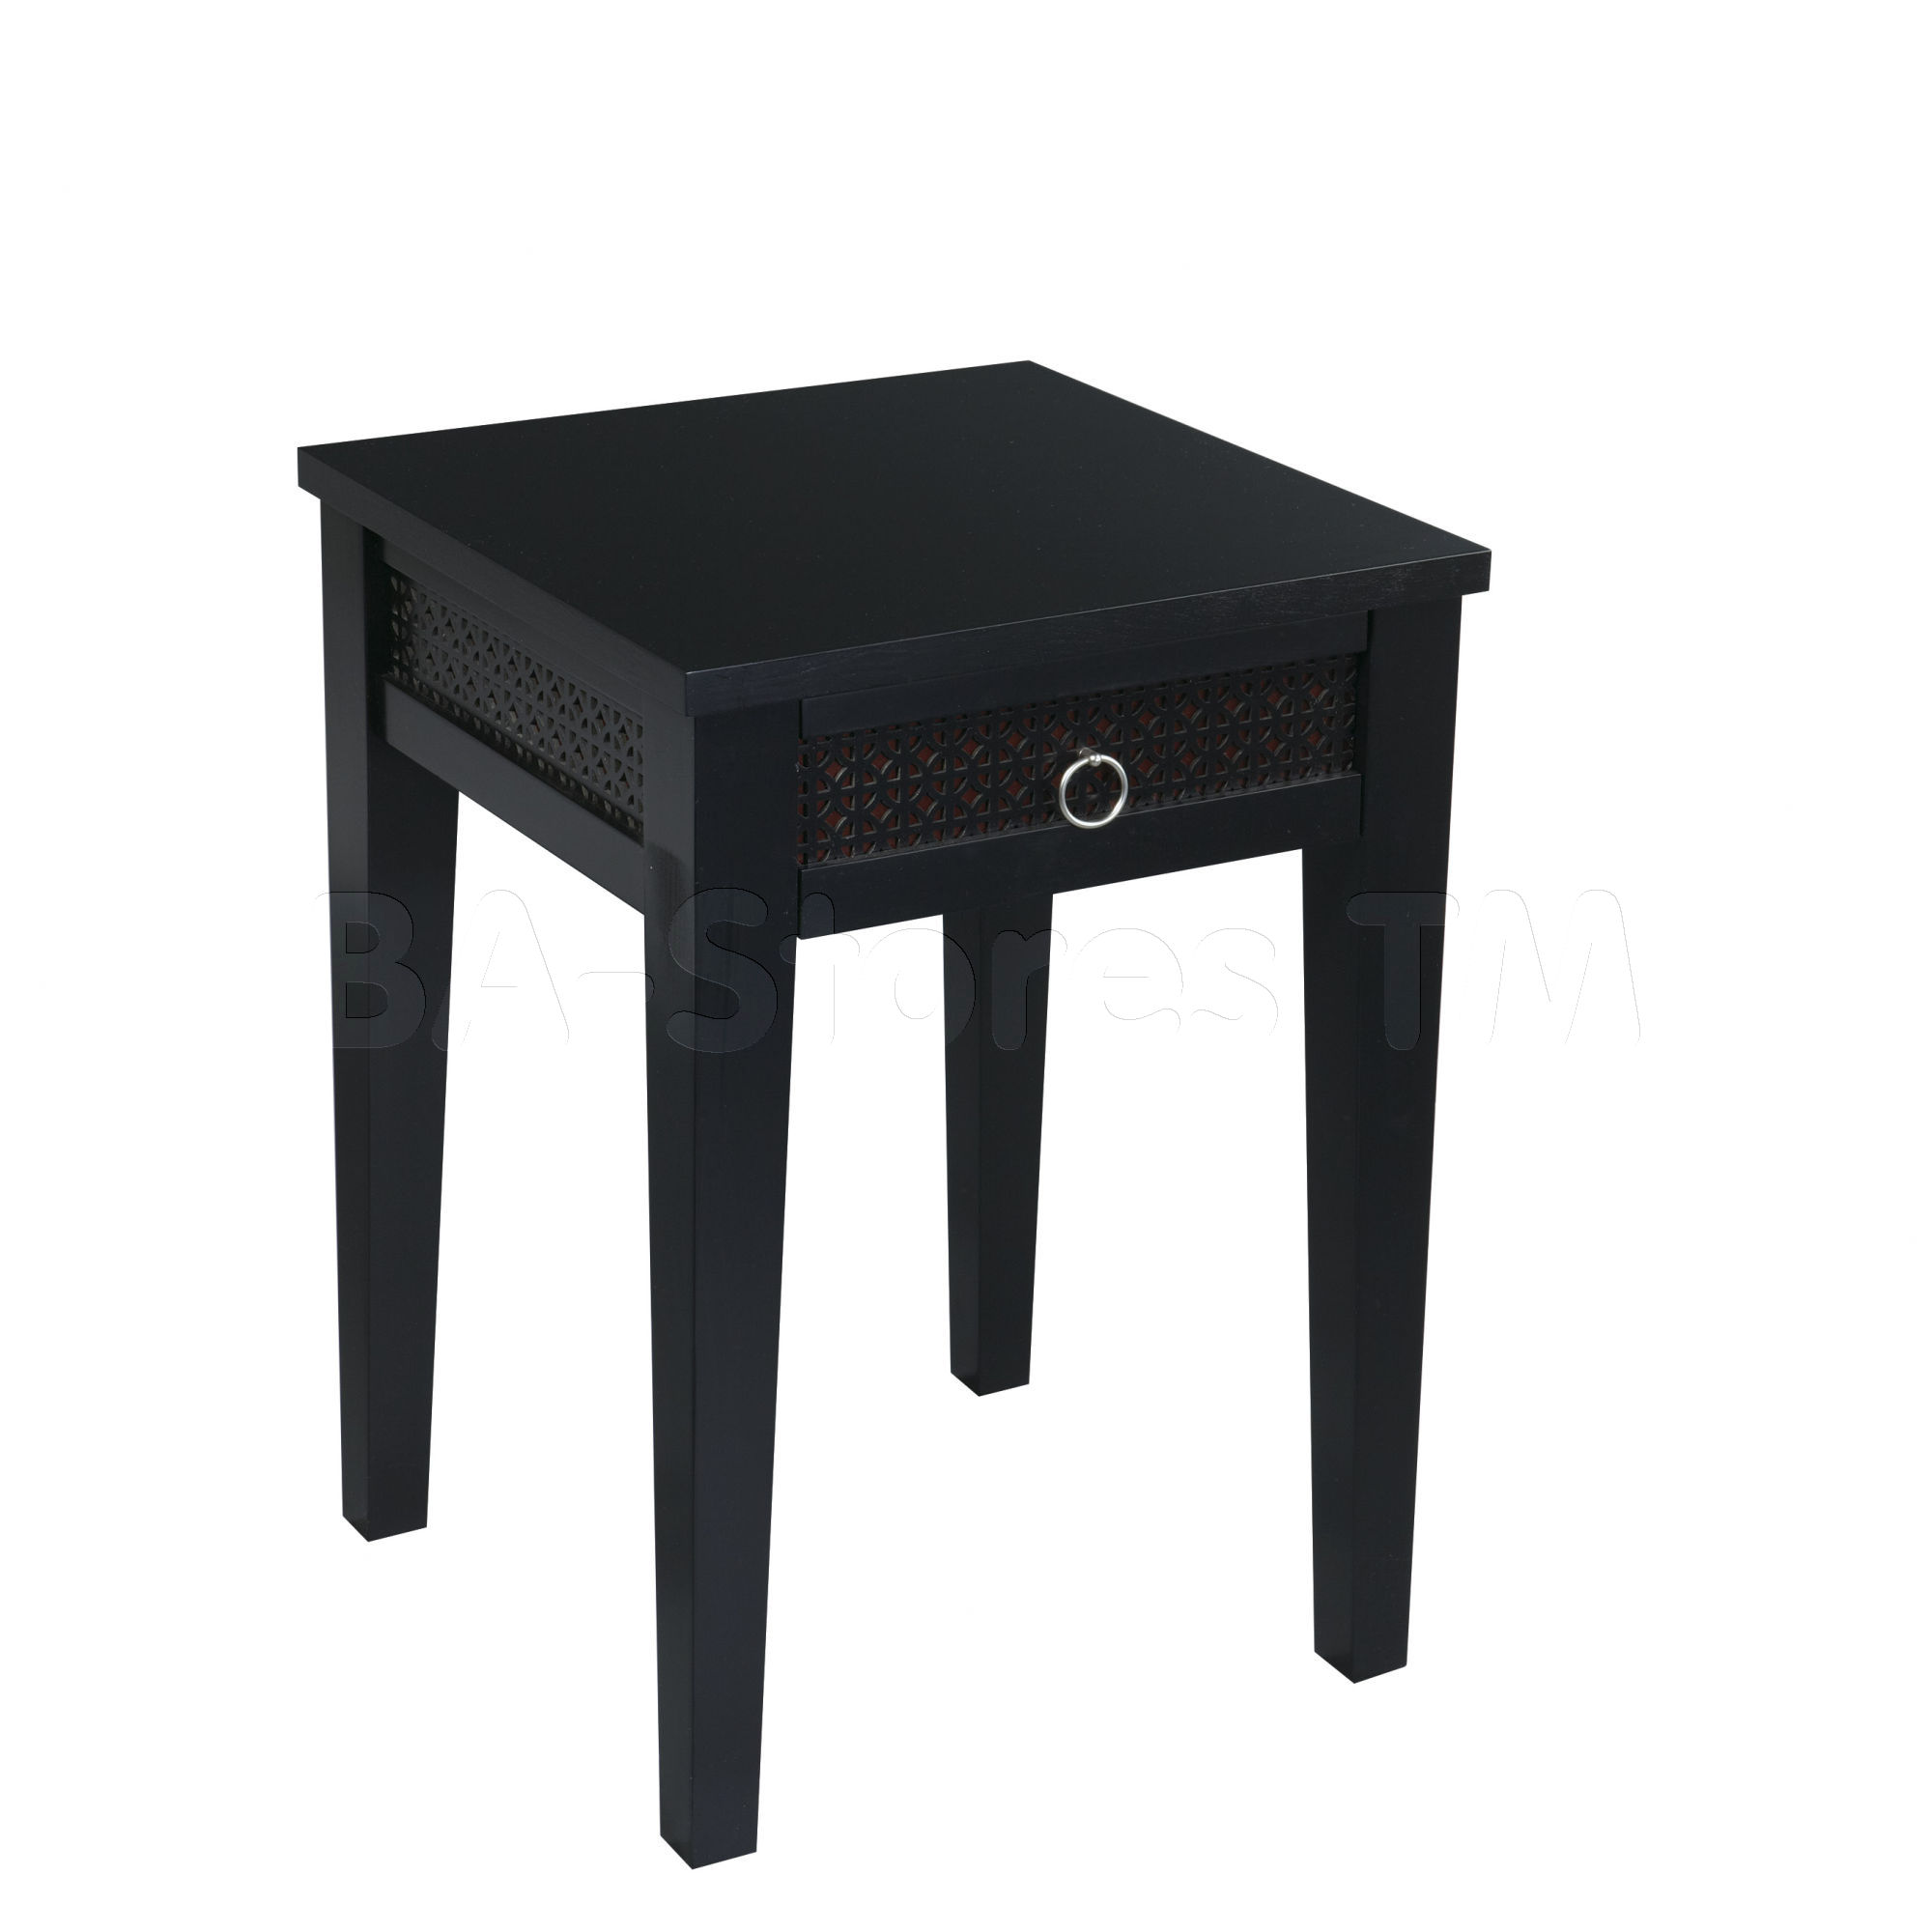 round black wooden side table curvy legs having furniture square with drawers four mini small tables chic design complete your decoration drawer dog kennel outdoor garden sets